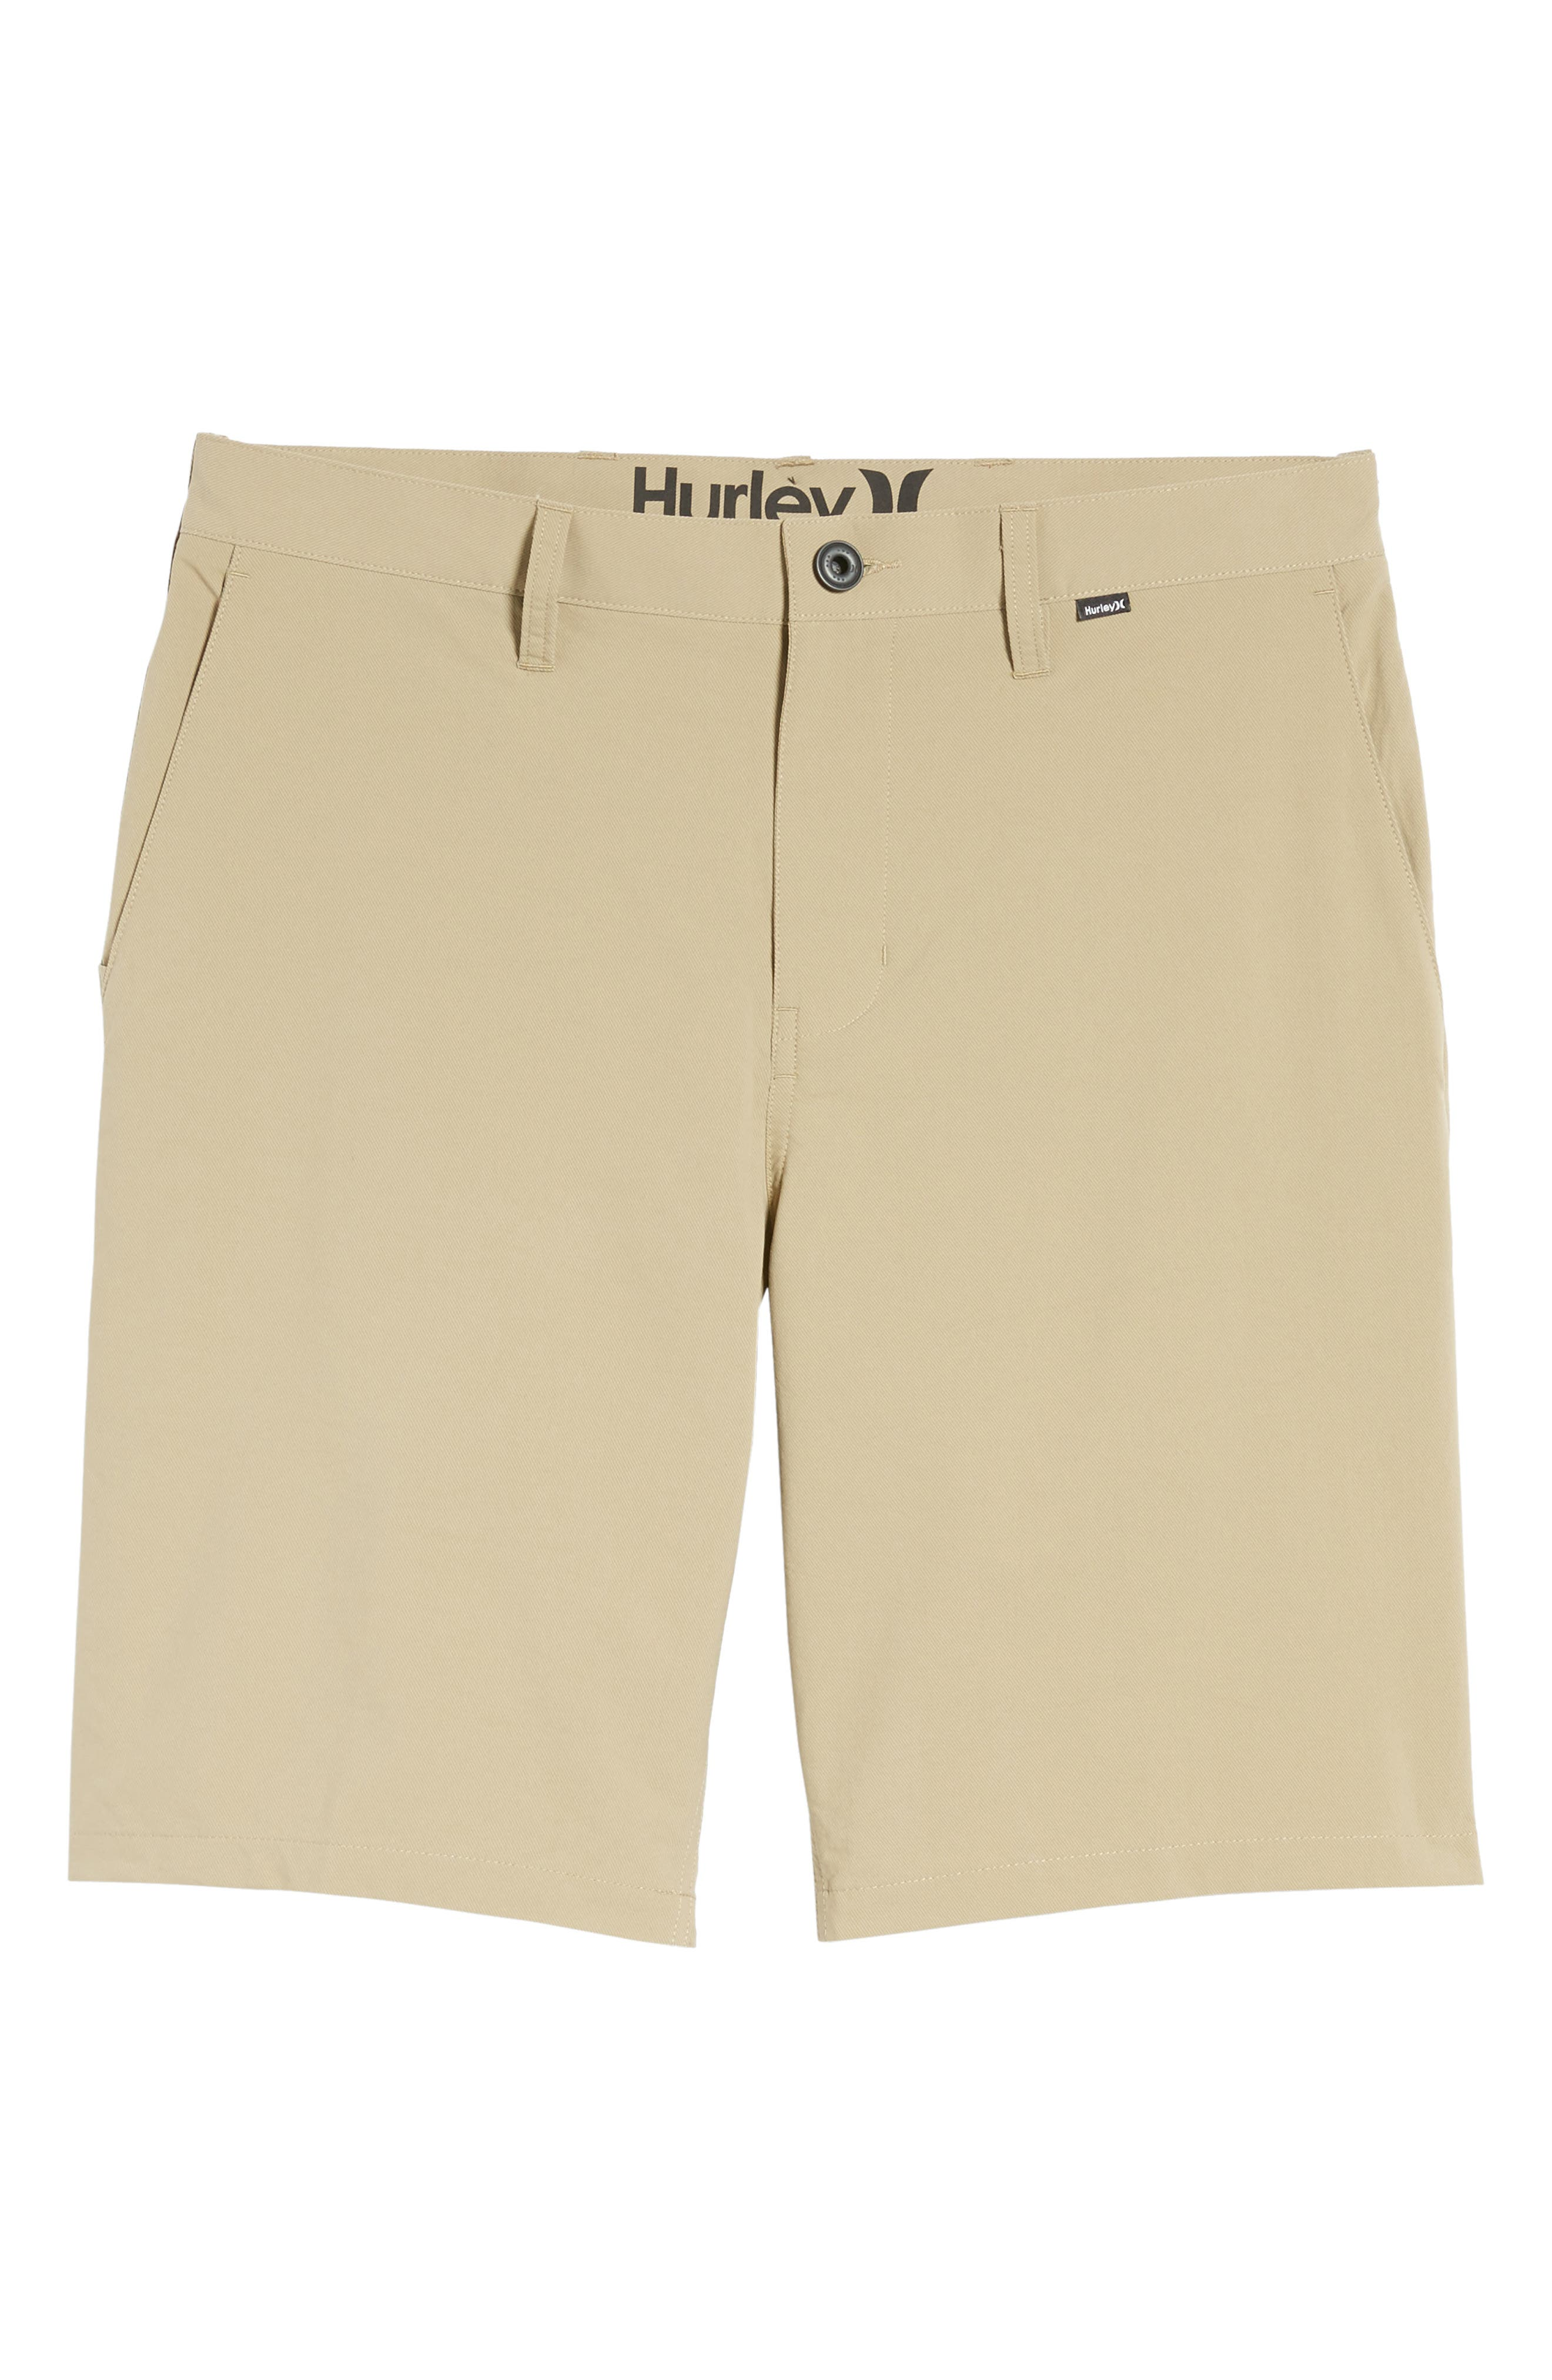 'Dry Out' Dri-FIT<sup>™</sup> Chino Shorts,                             Alternate thumbnail 55, color,